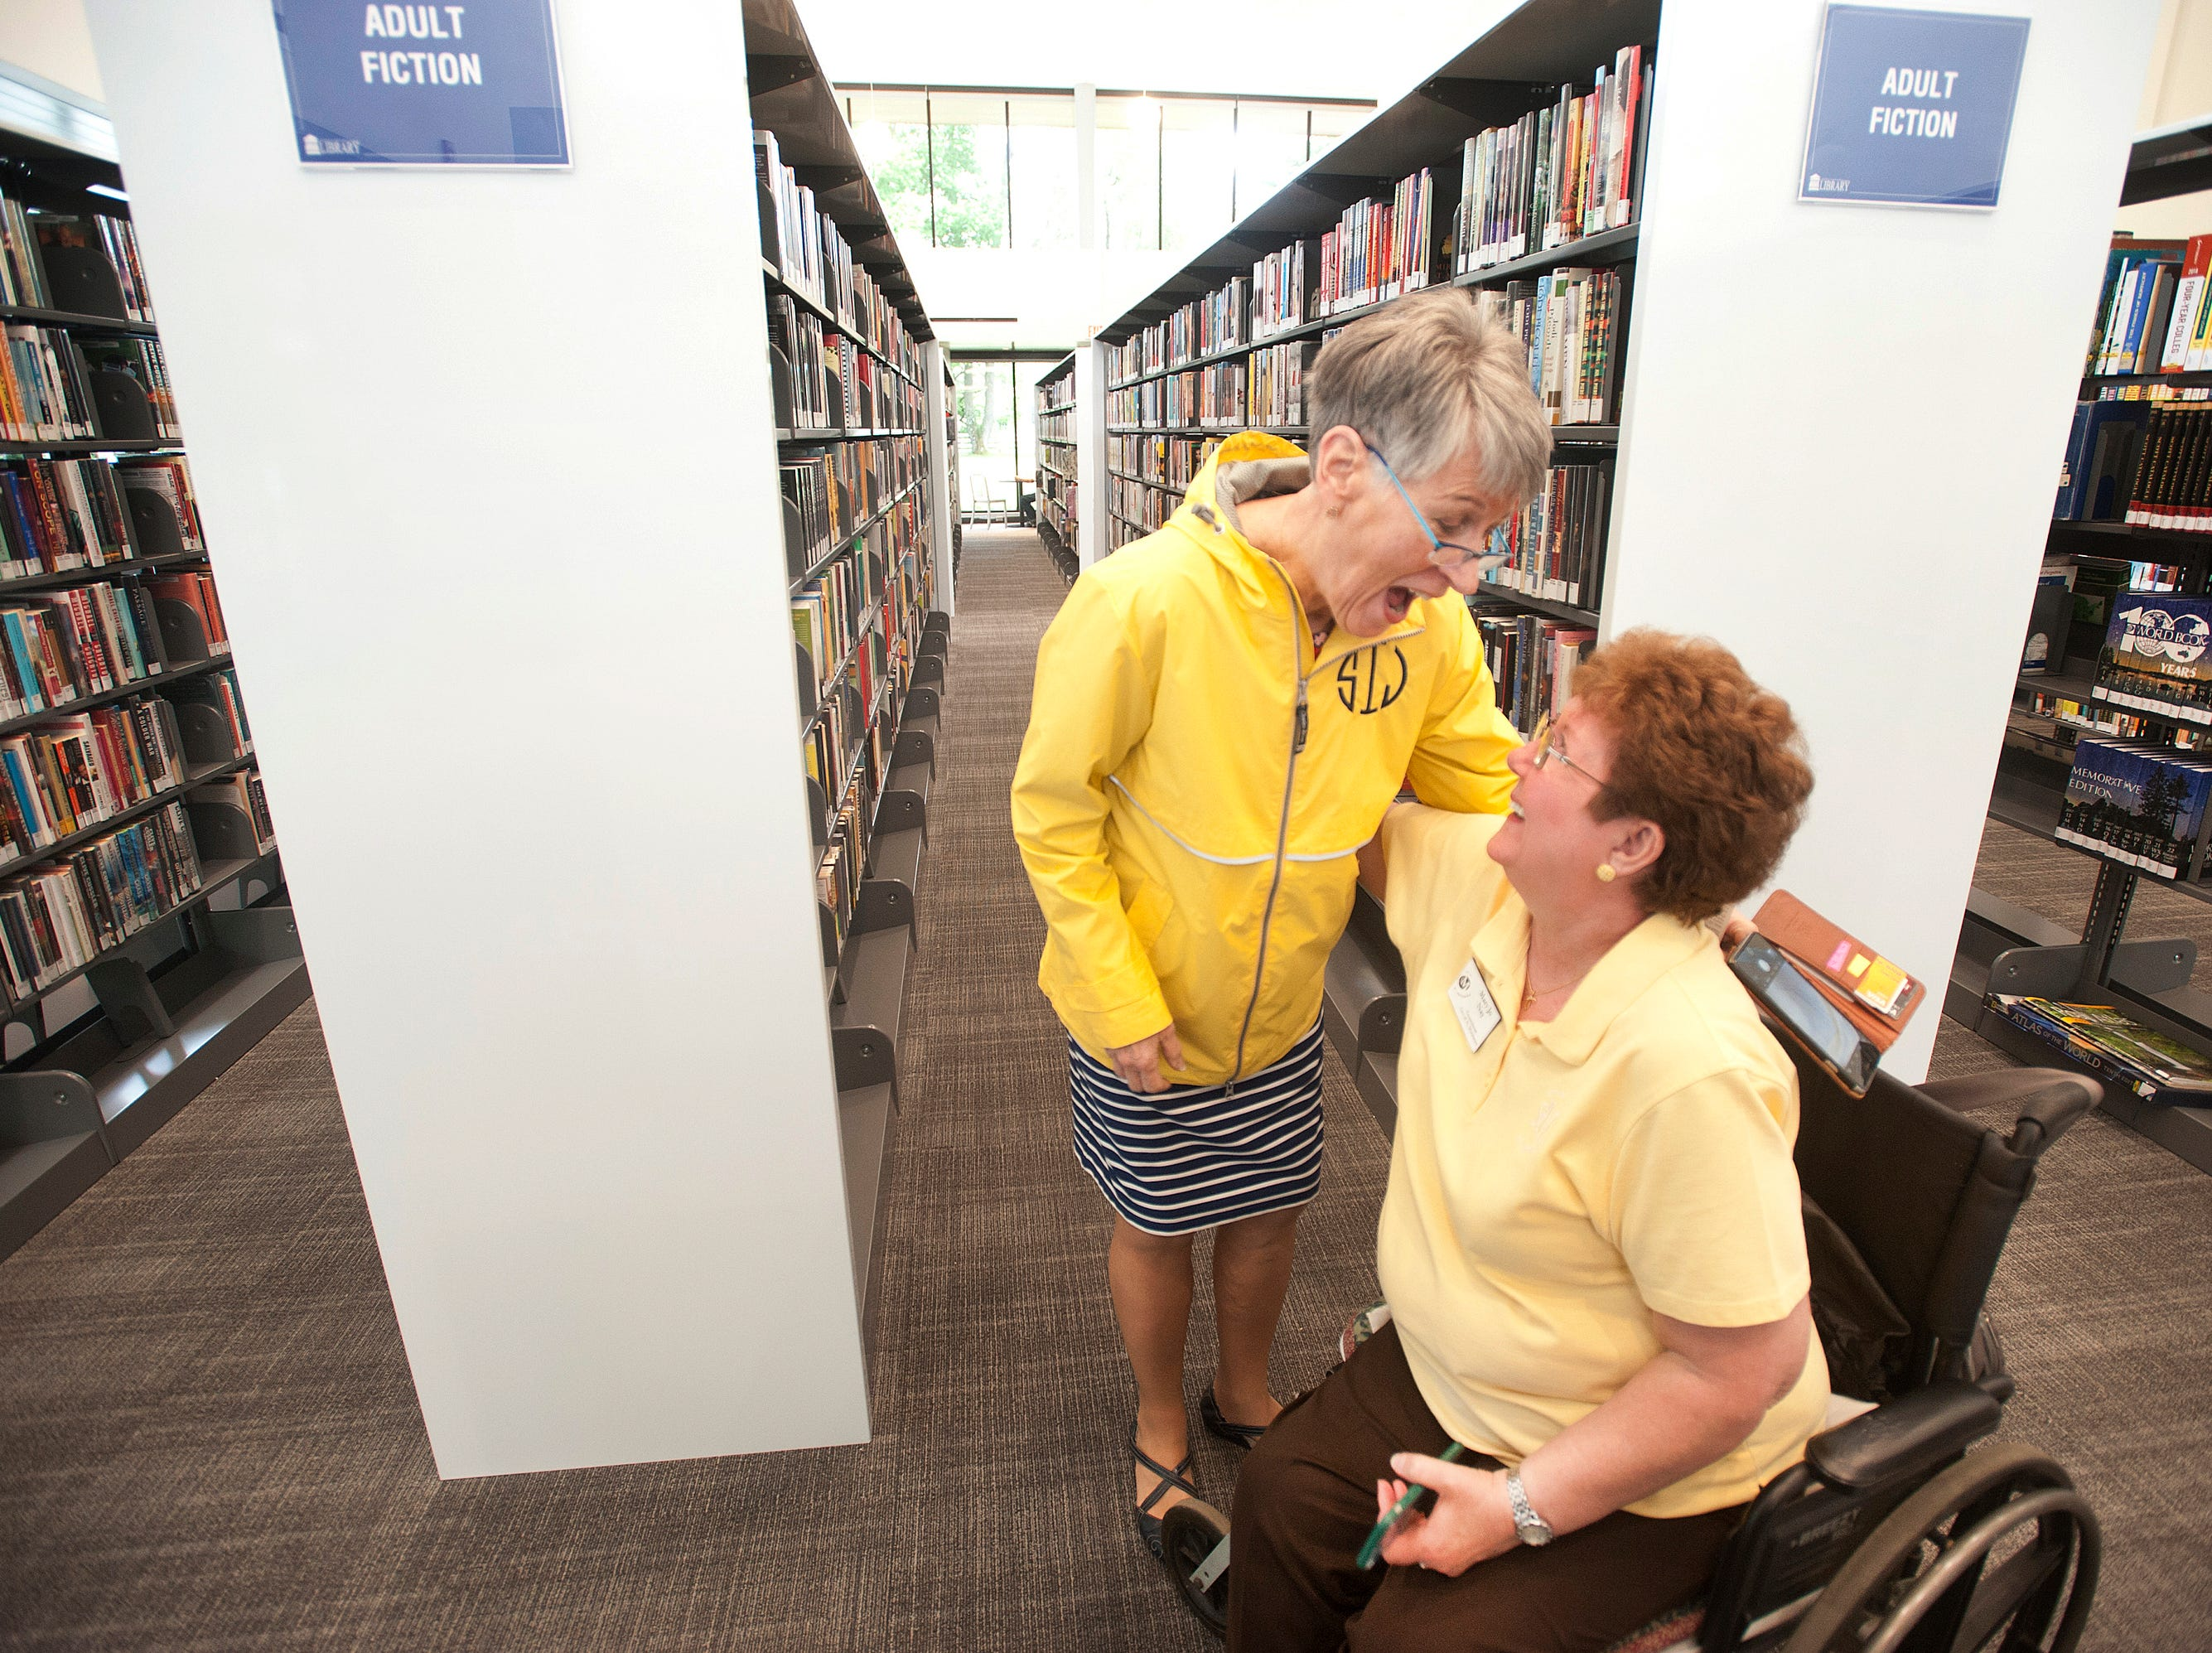 Susan Irving, left, the library's former branch manager hugs St. Matthews Councilman Mary Jo Nay, right, in the adult section of the new library addition. May 9, 2019